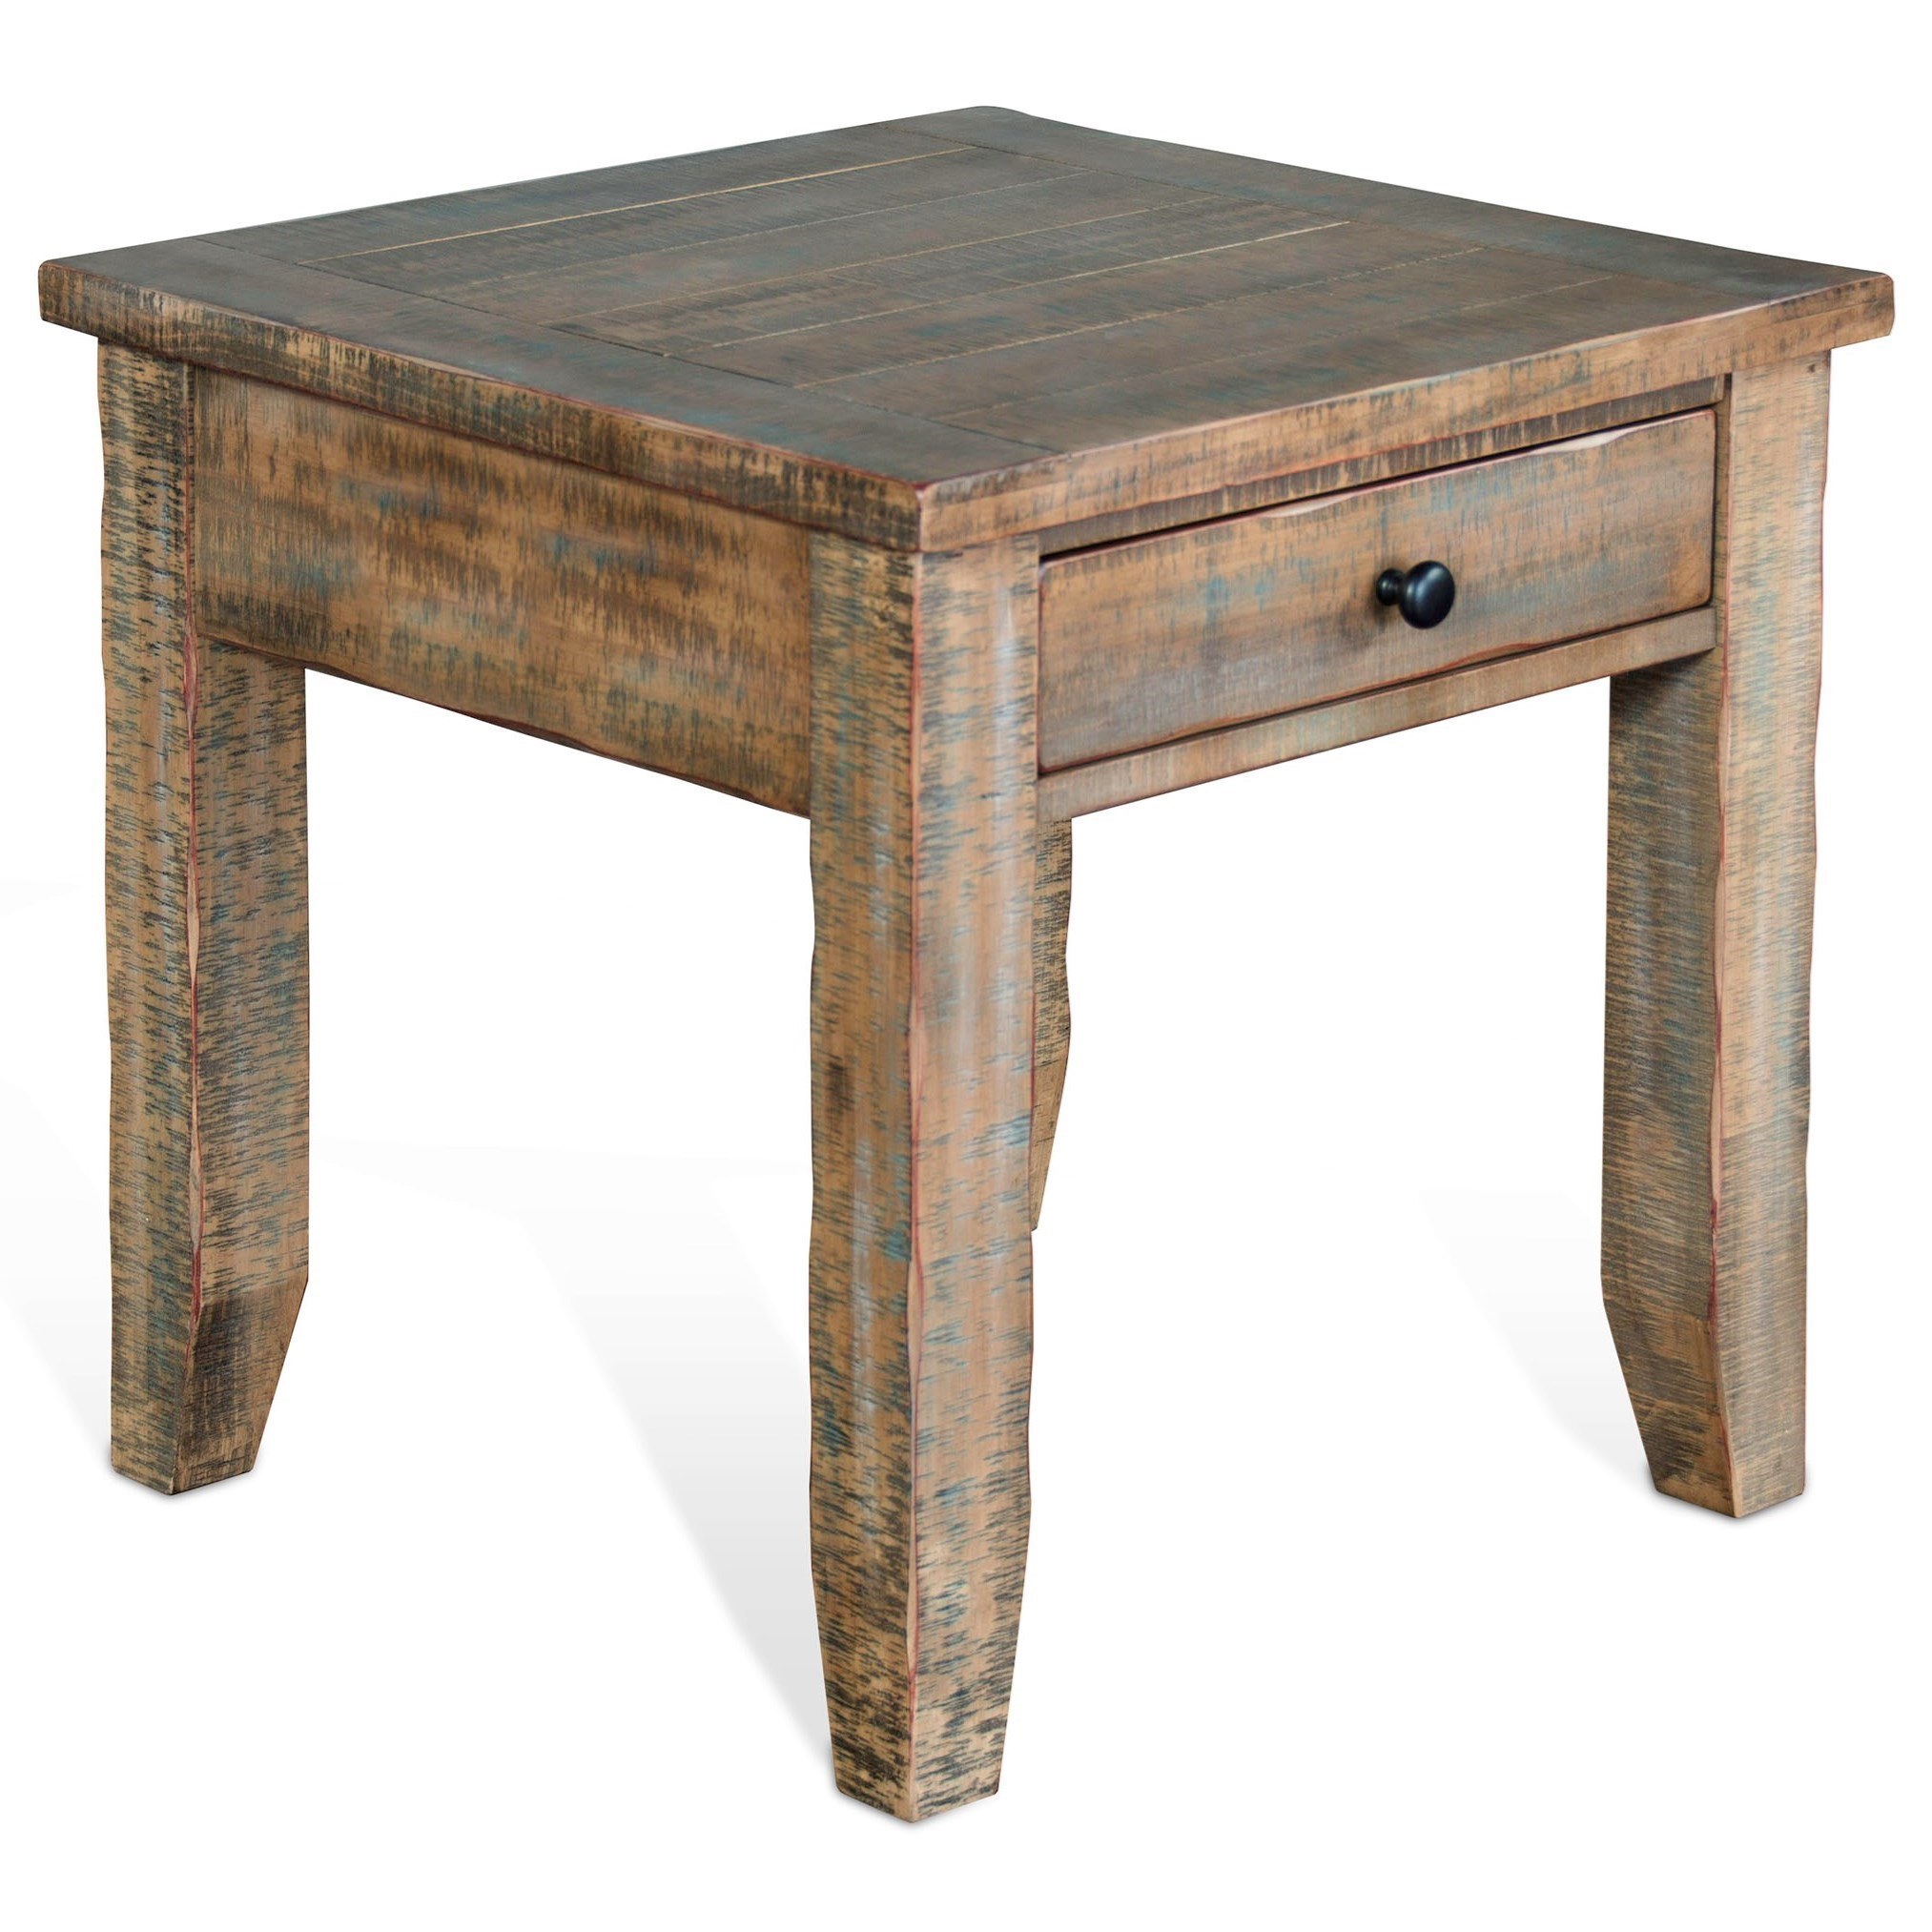 Coffee And End Tables With Storage Puebla Rustic End Table By Sunny Designs At Fashion Furniture